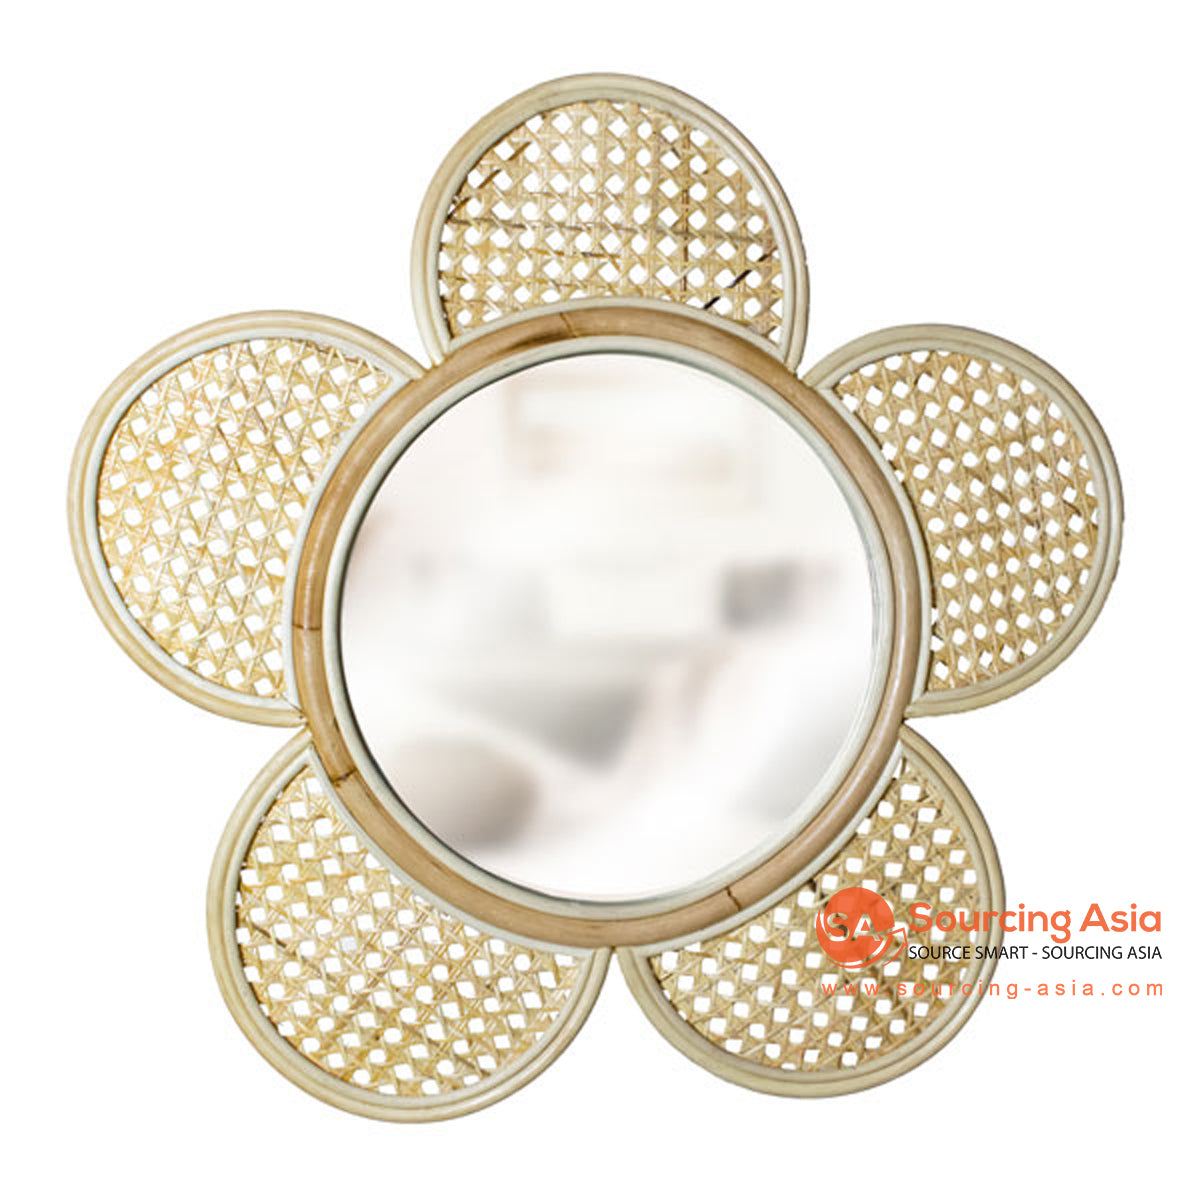 SHL173 NATURAL RATTAN FLOWER MIRROR